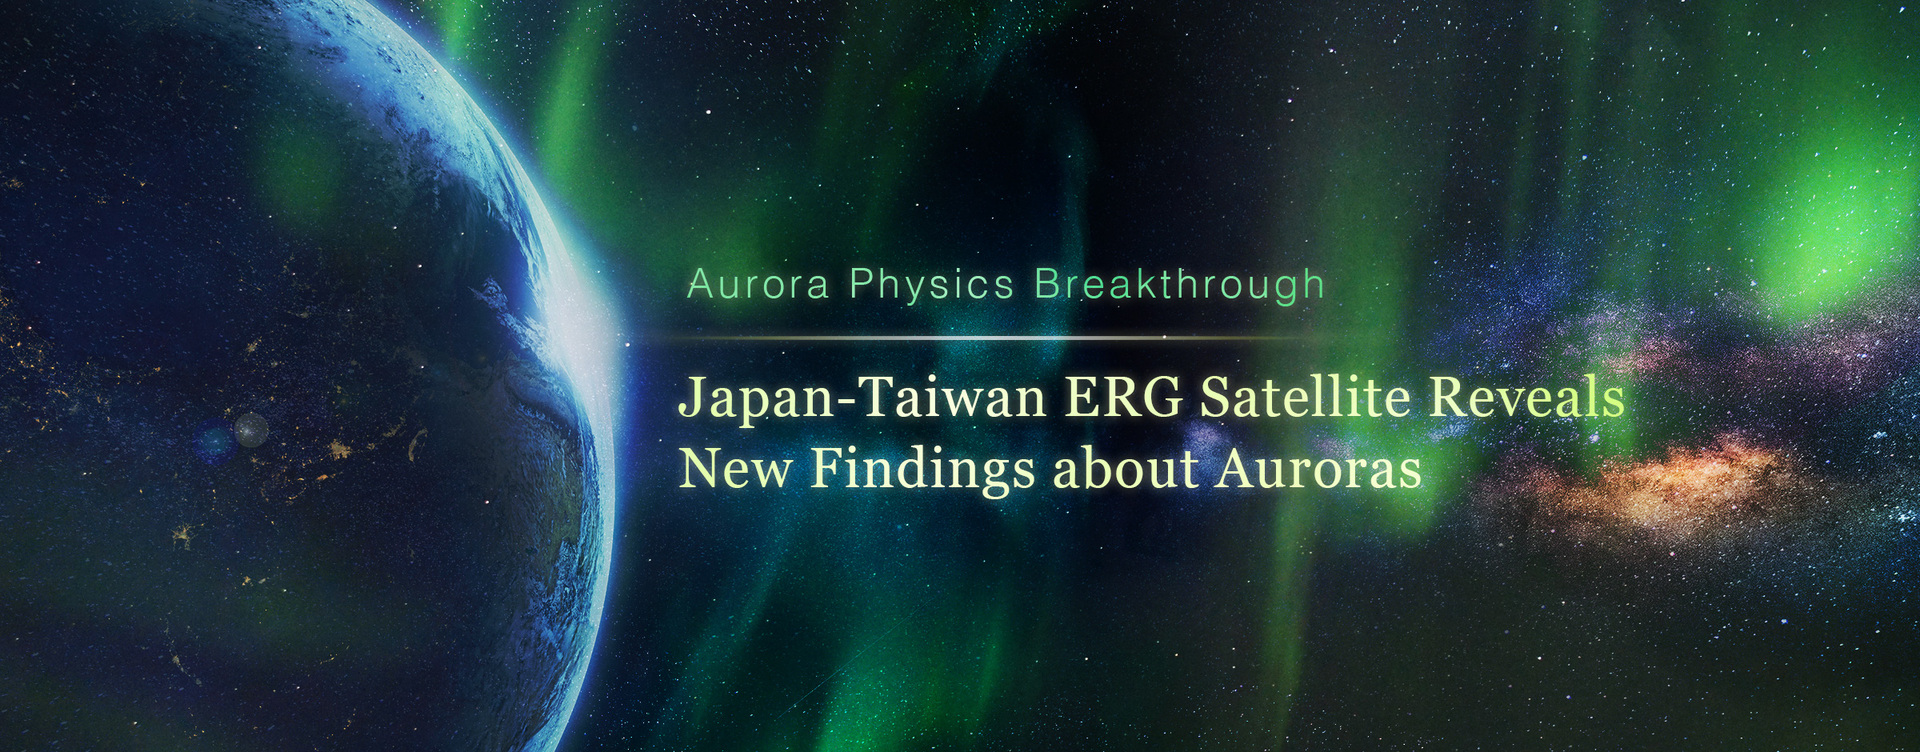 Aurora Physics Breakthrough: Japan-Taiwan ERG Satellite Reveals New Findings about Auroras